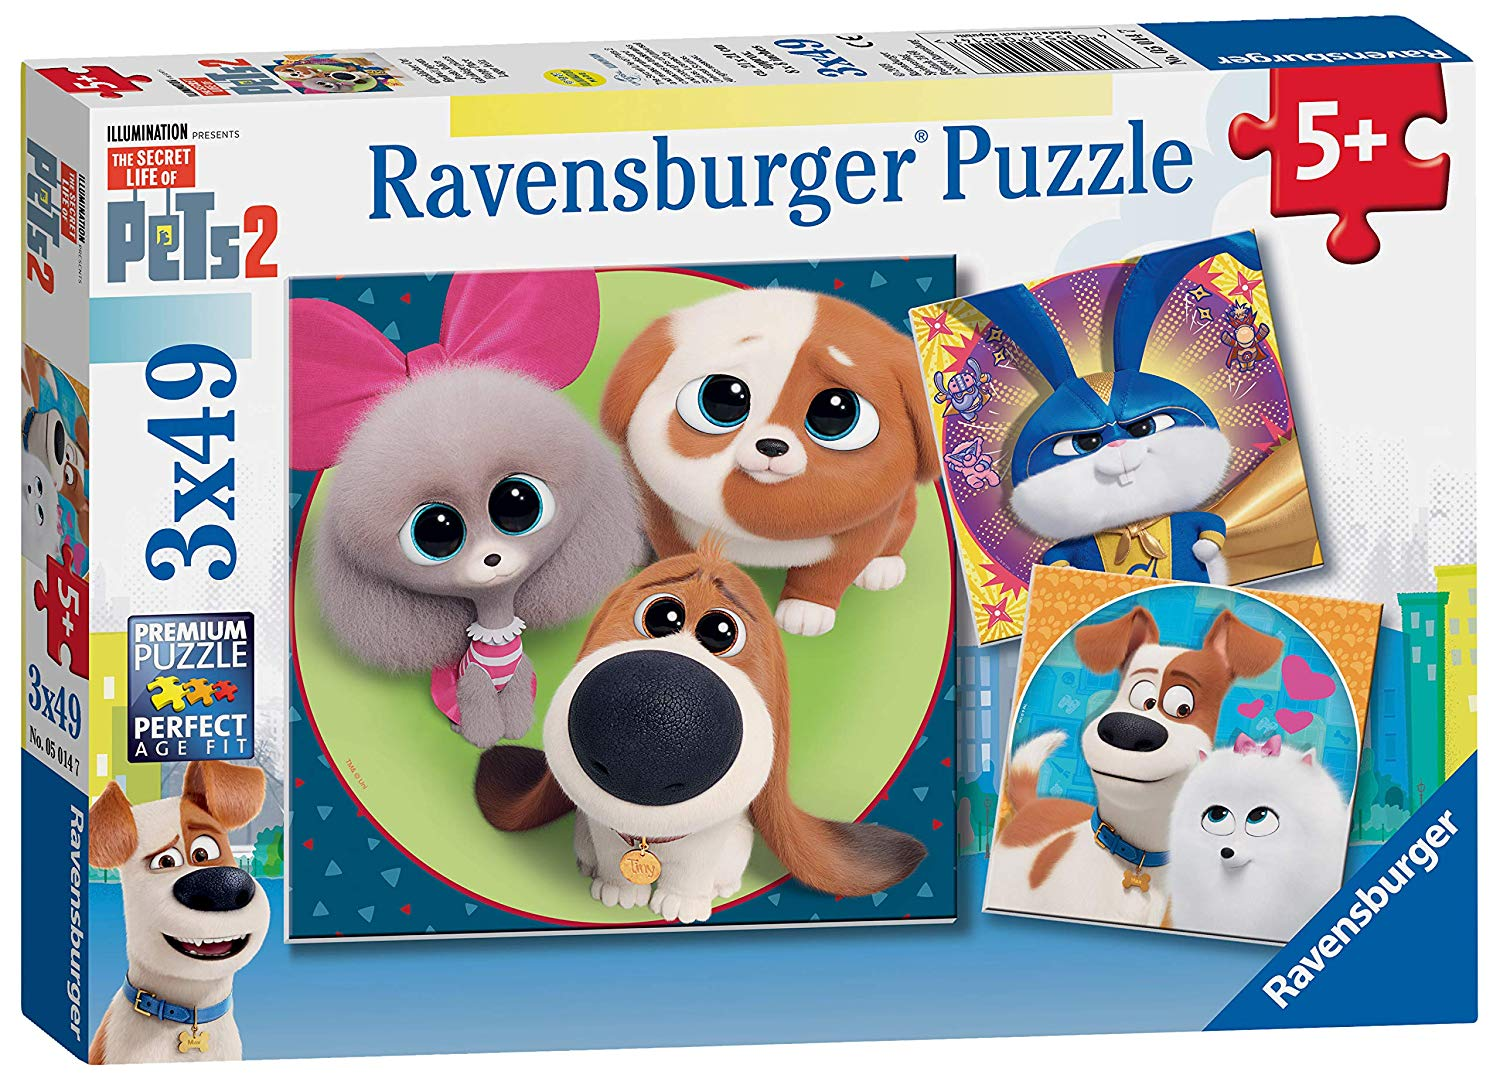 ravensburger-xxl-teile-3-puzzles-the-secret-life-of-pets-2-49-teile-puzzle-ravensburger-05014